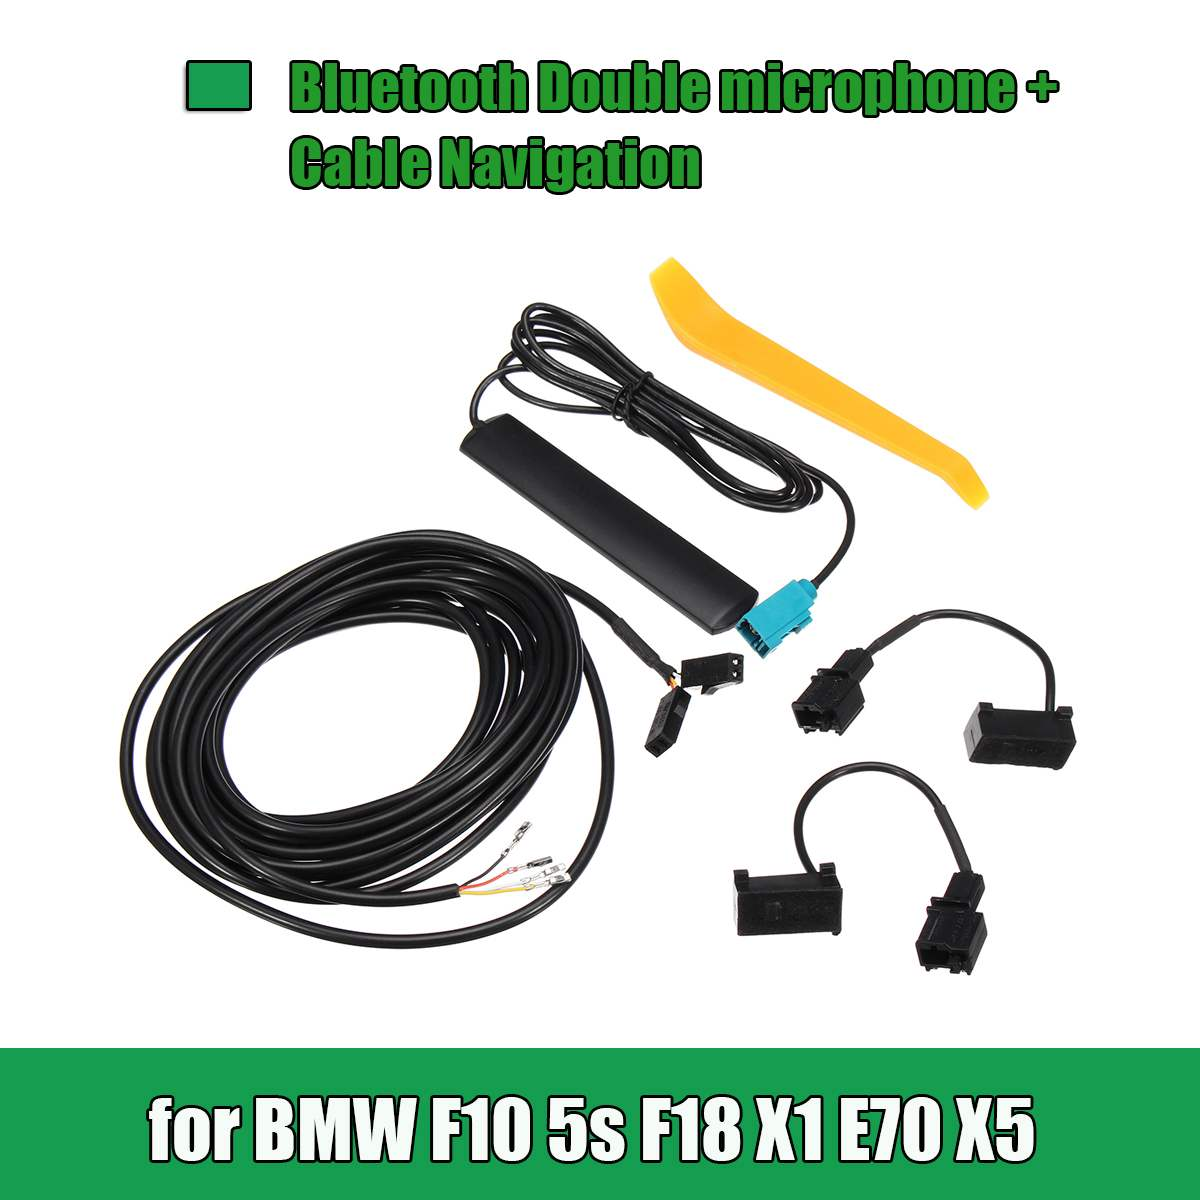 12/13/25/26 Pin <font><b>bluetooth</b></font> Double Microphone Aux Cable Adapter Car GPS Navigation Cable DIY Set For <font><b>BMW</b></font> F10 5S F18 X1 <font><b>E70</b></font> <font><b>X5</b></font> image